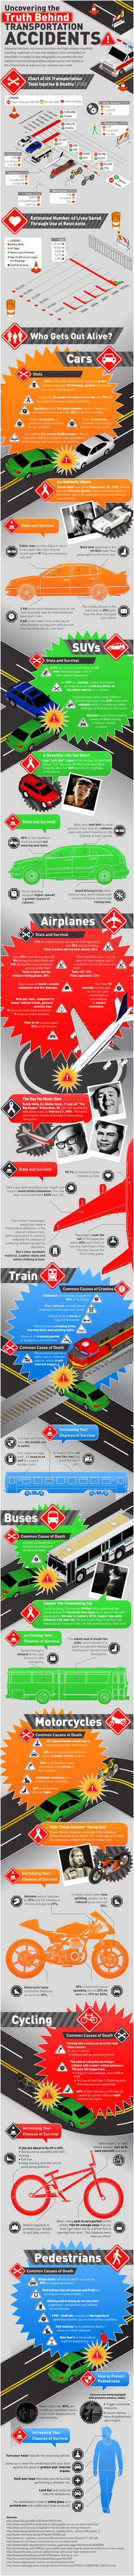 uncovering the truth behind transportation accidents infographic forensic science health and safety forensics